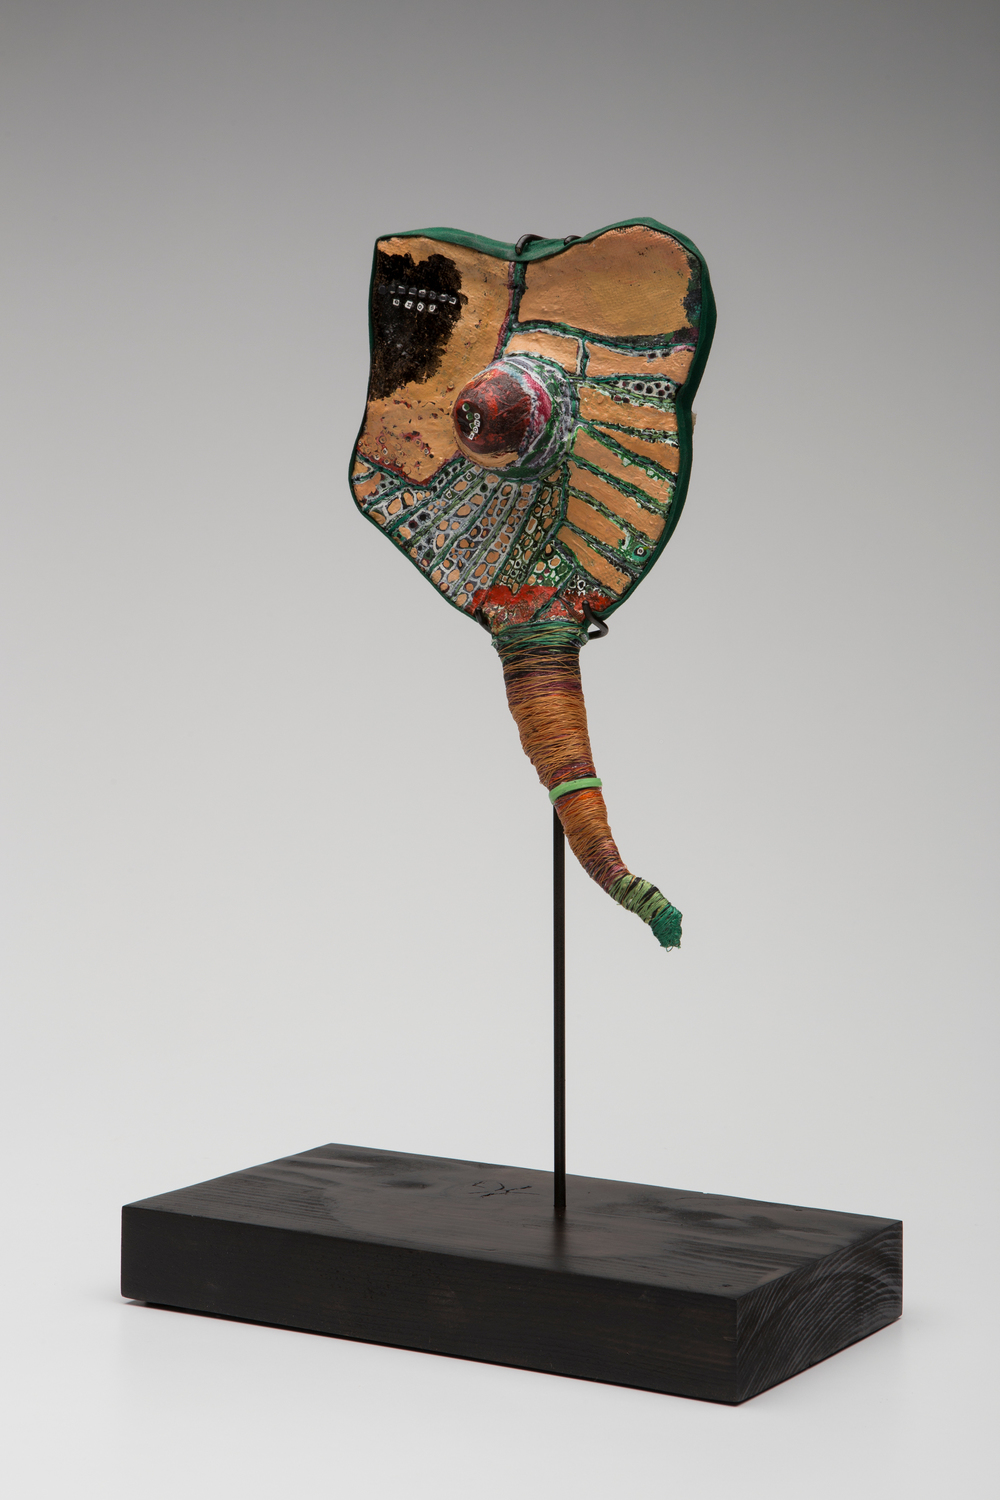 Prayer Paddle: Eros , mixed media, 10 by 7 inches, 2007-2014.